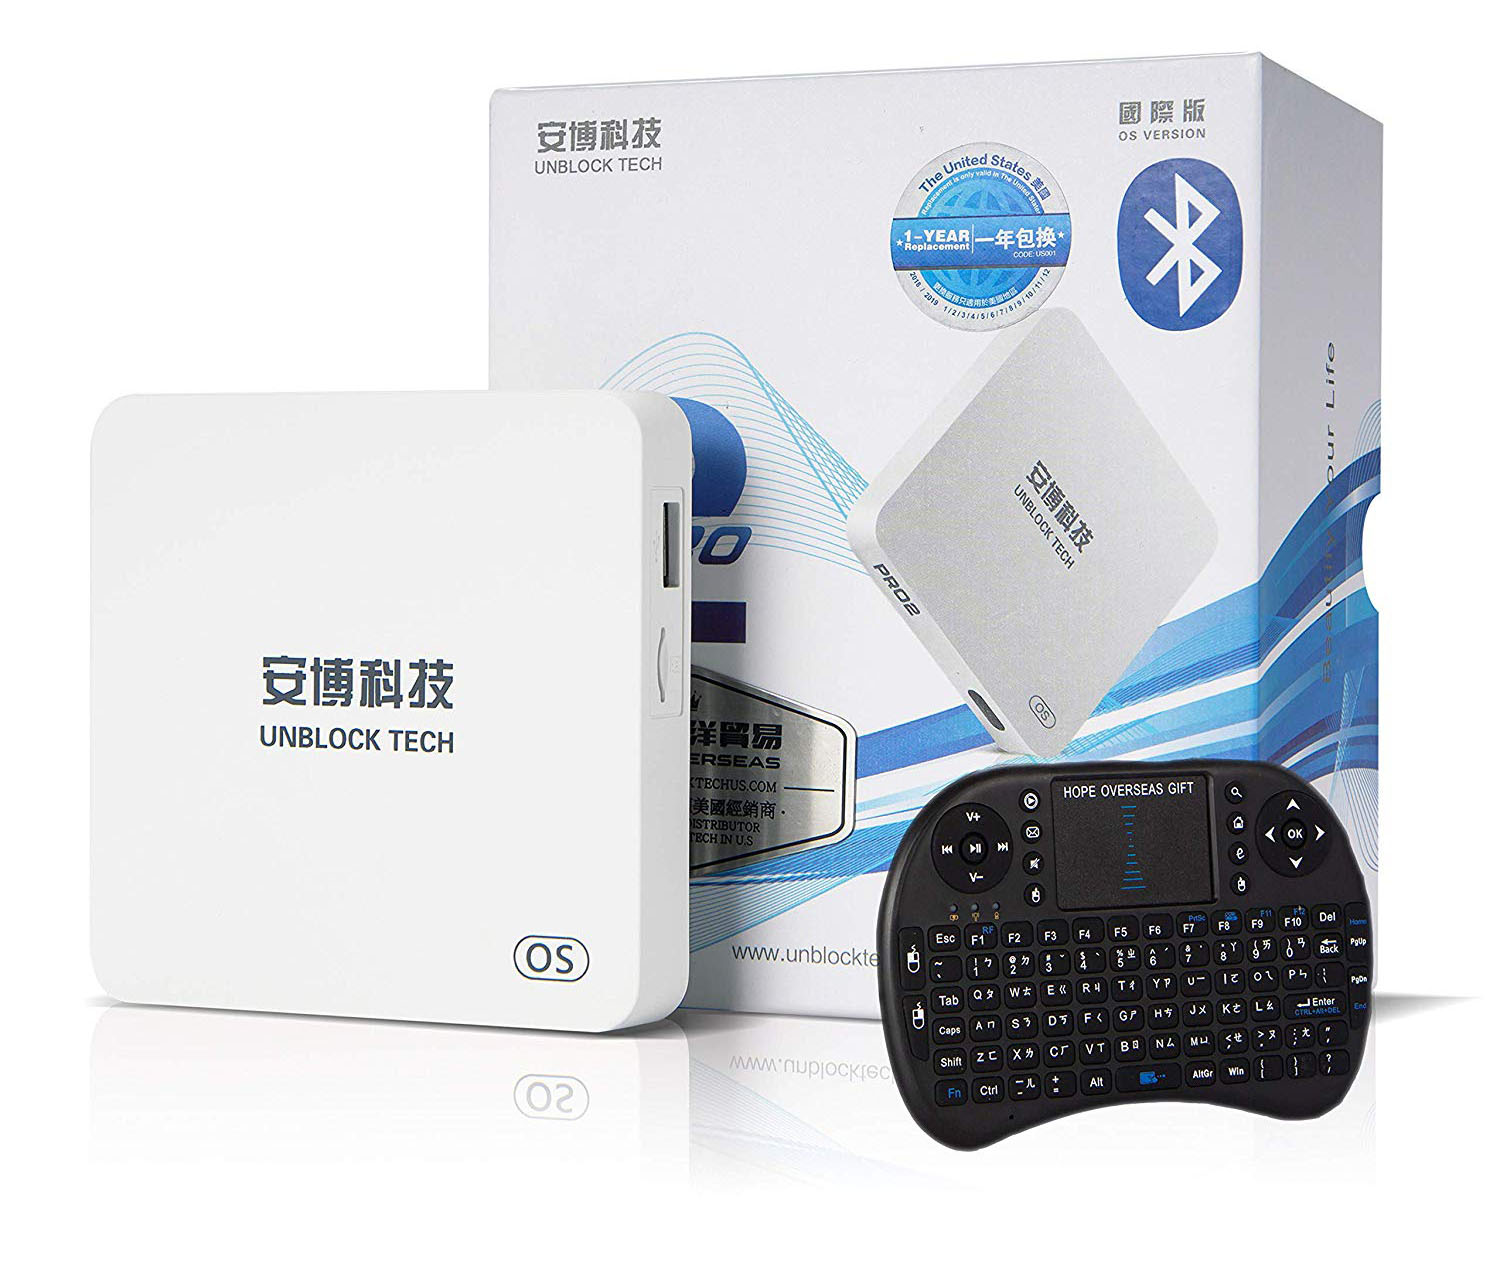 10 Best Chinese TV Boxes to Buy in 2019 - [ Guide & Review ]